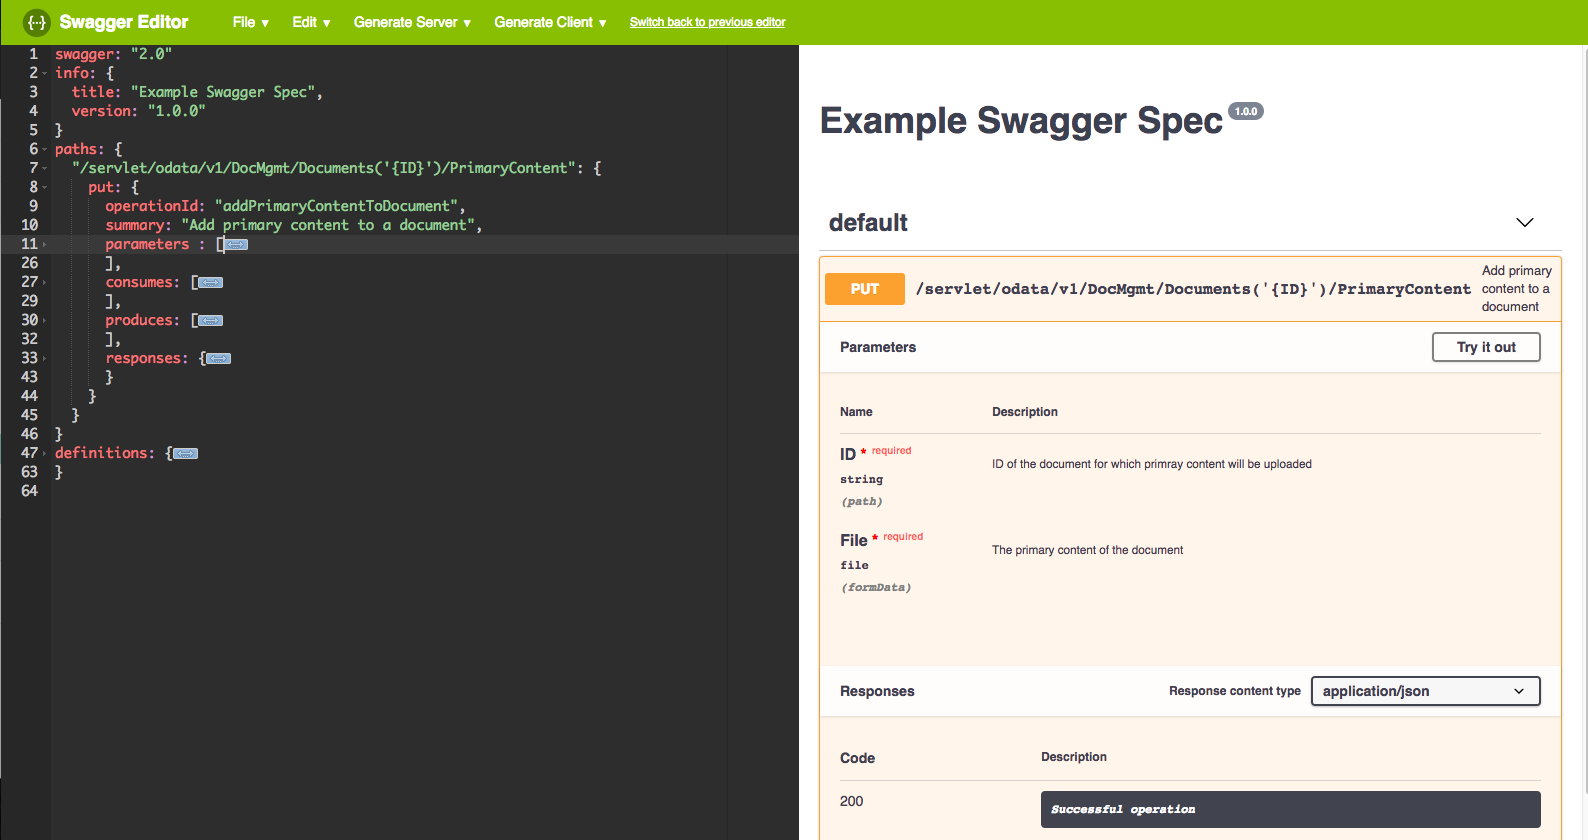 Adding Unavailable Endpoints Using a Swagger Specification